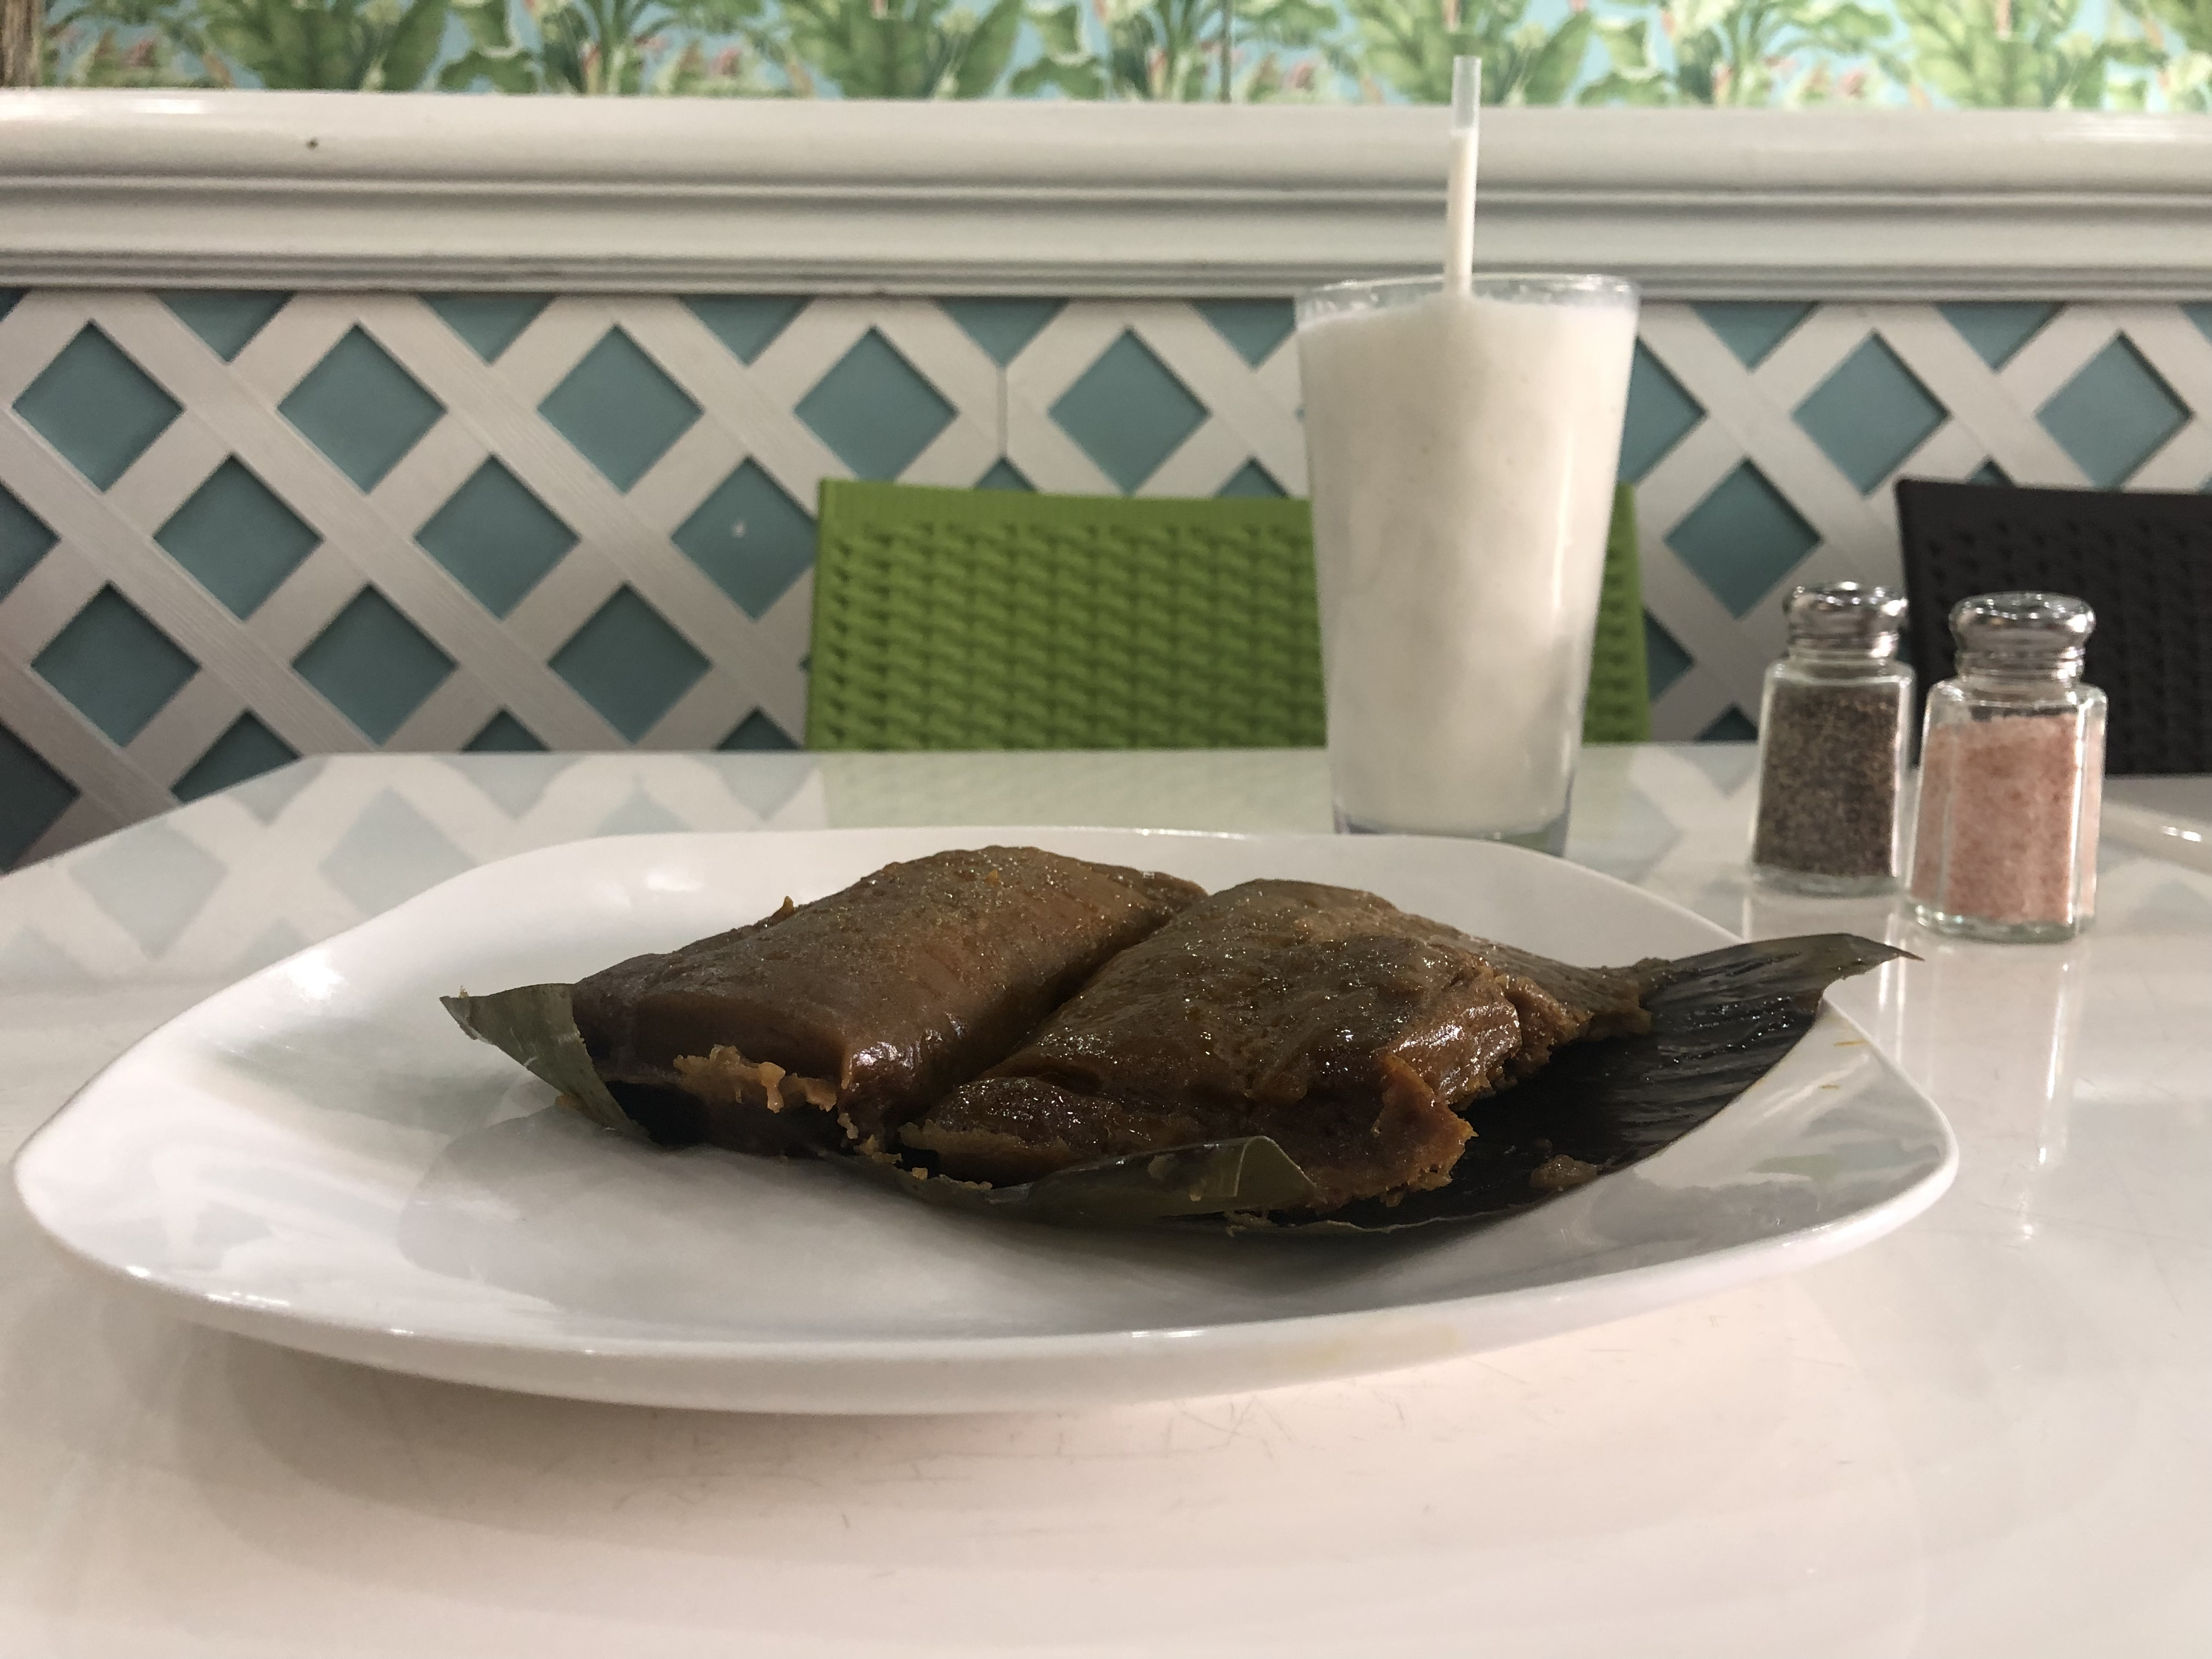 Pork pasteles at the Freakin Rican sit on a banana leaf